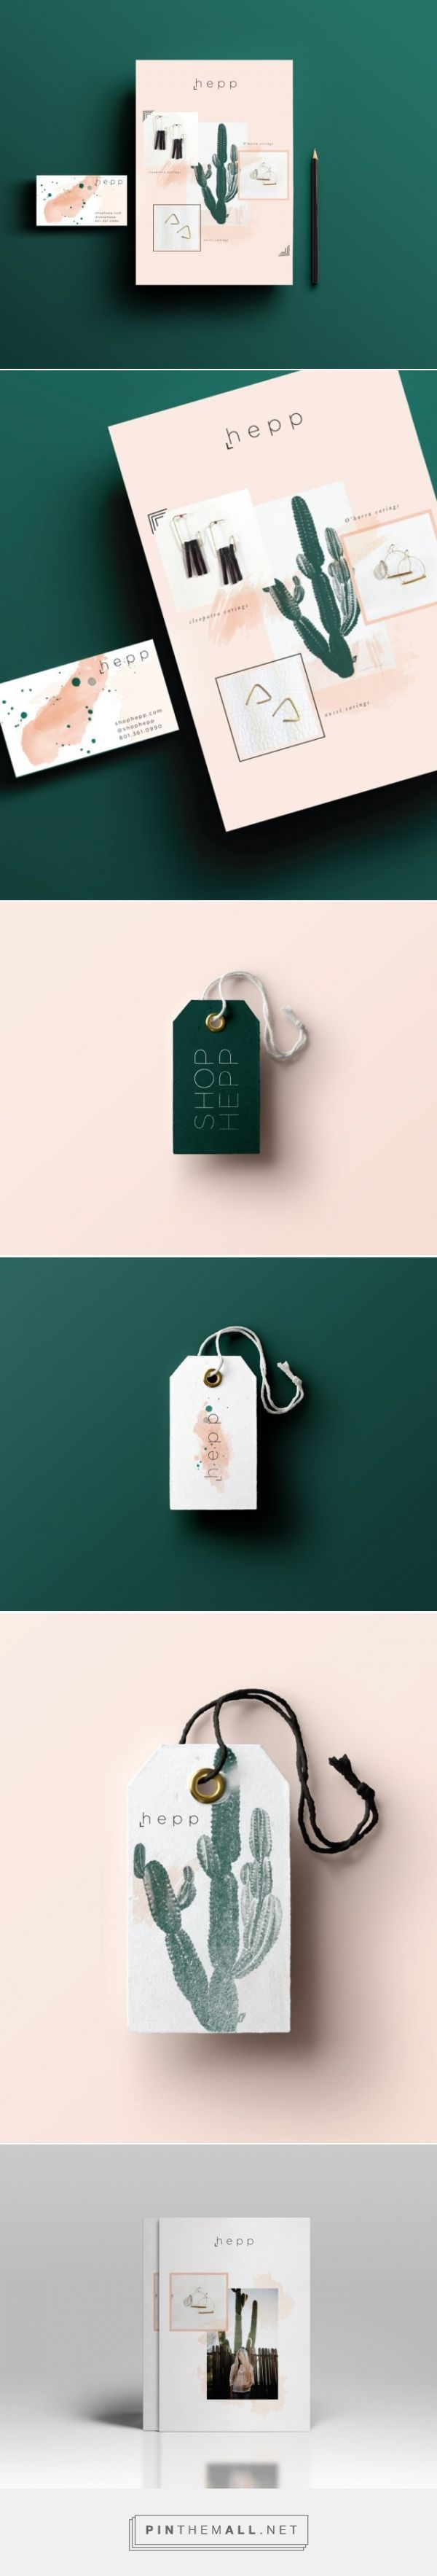 Hepp Branding by West End Girl Studio